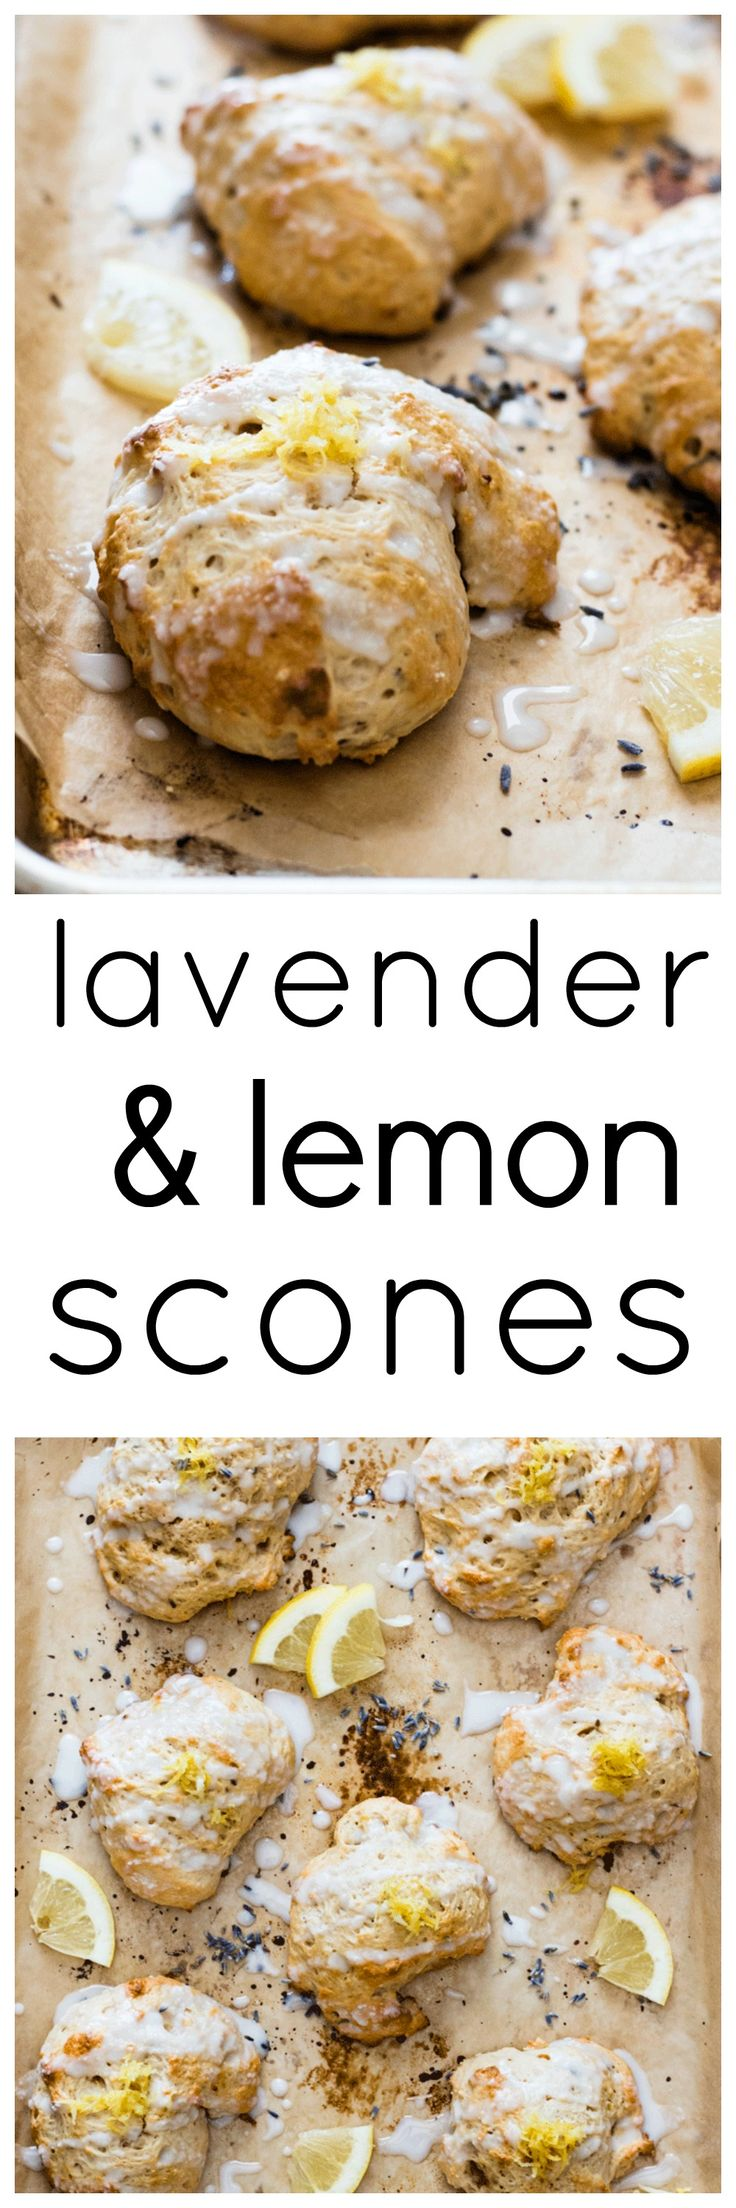 Fresh, citrusy, light and fluffy, these lemon scones just scream spring and are absolute perfection when paired with a hot cup of tea. via @wholefoodbellies